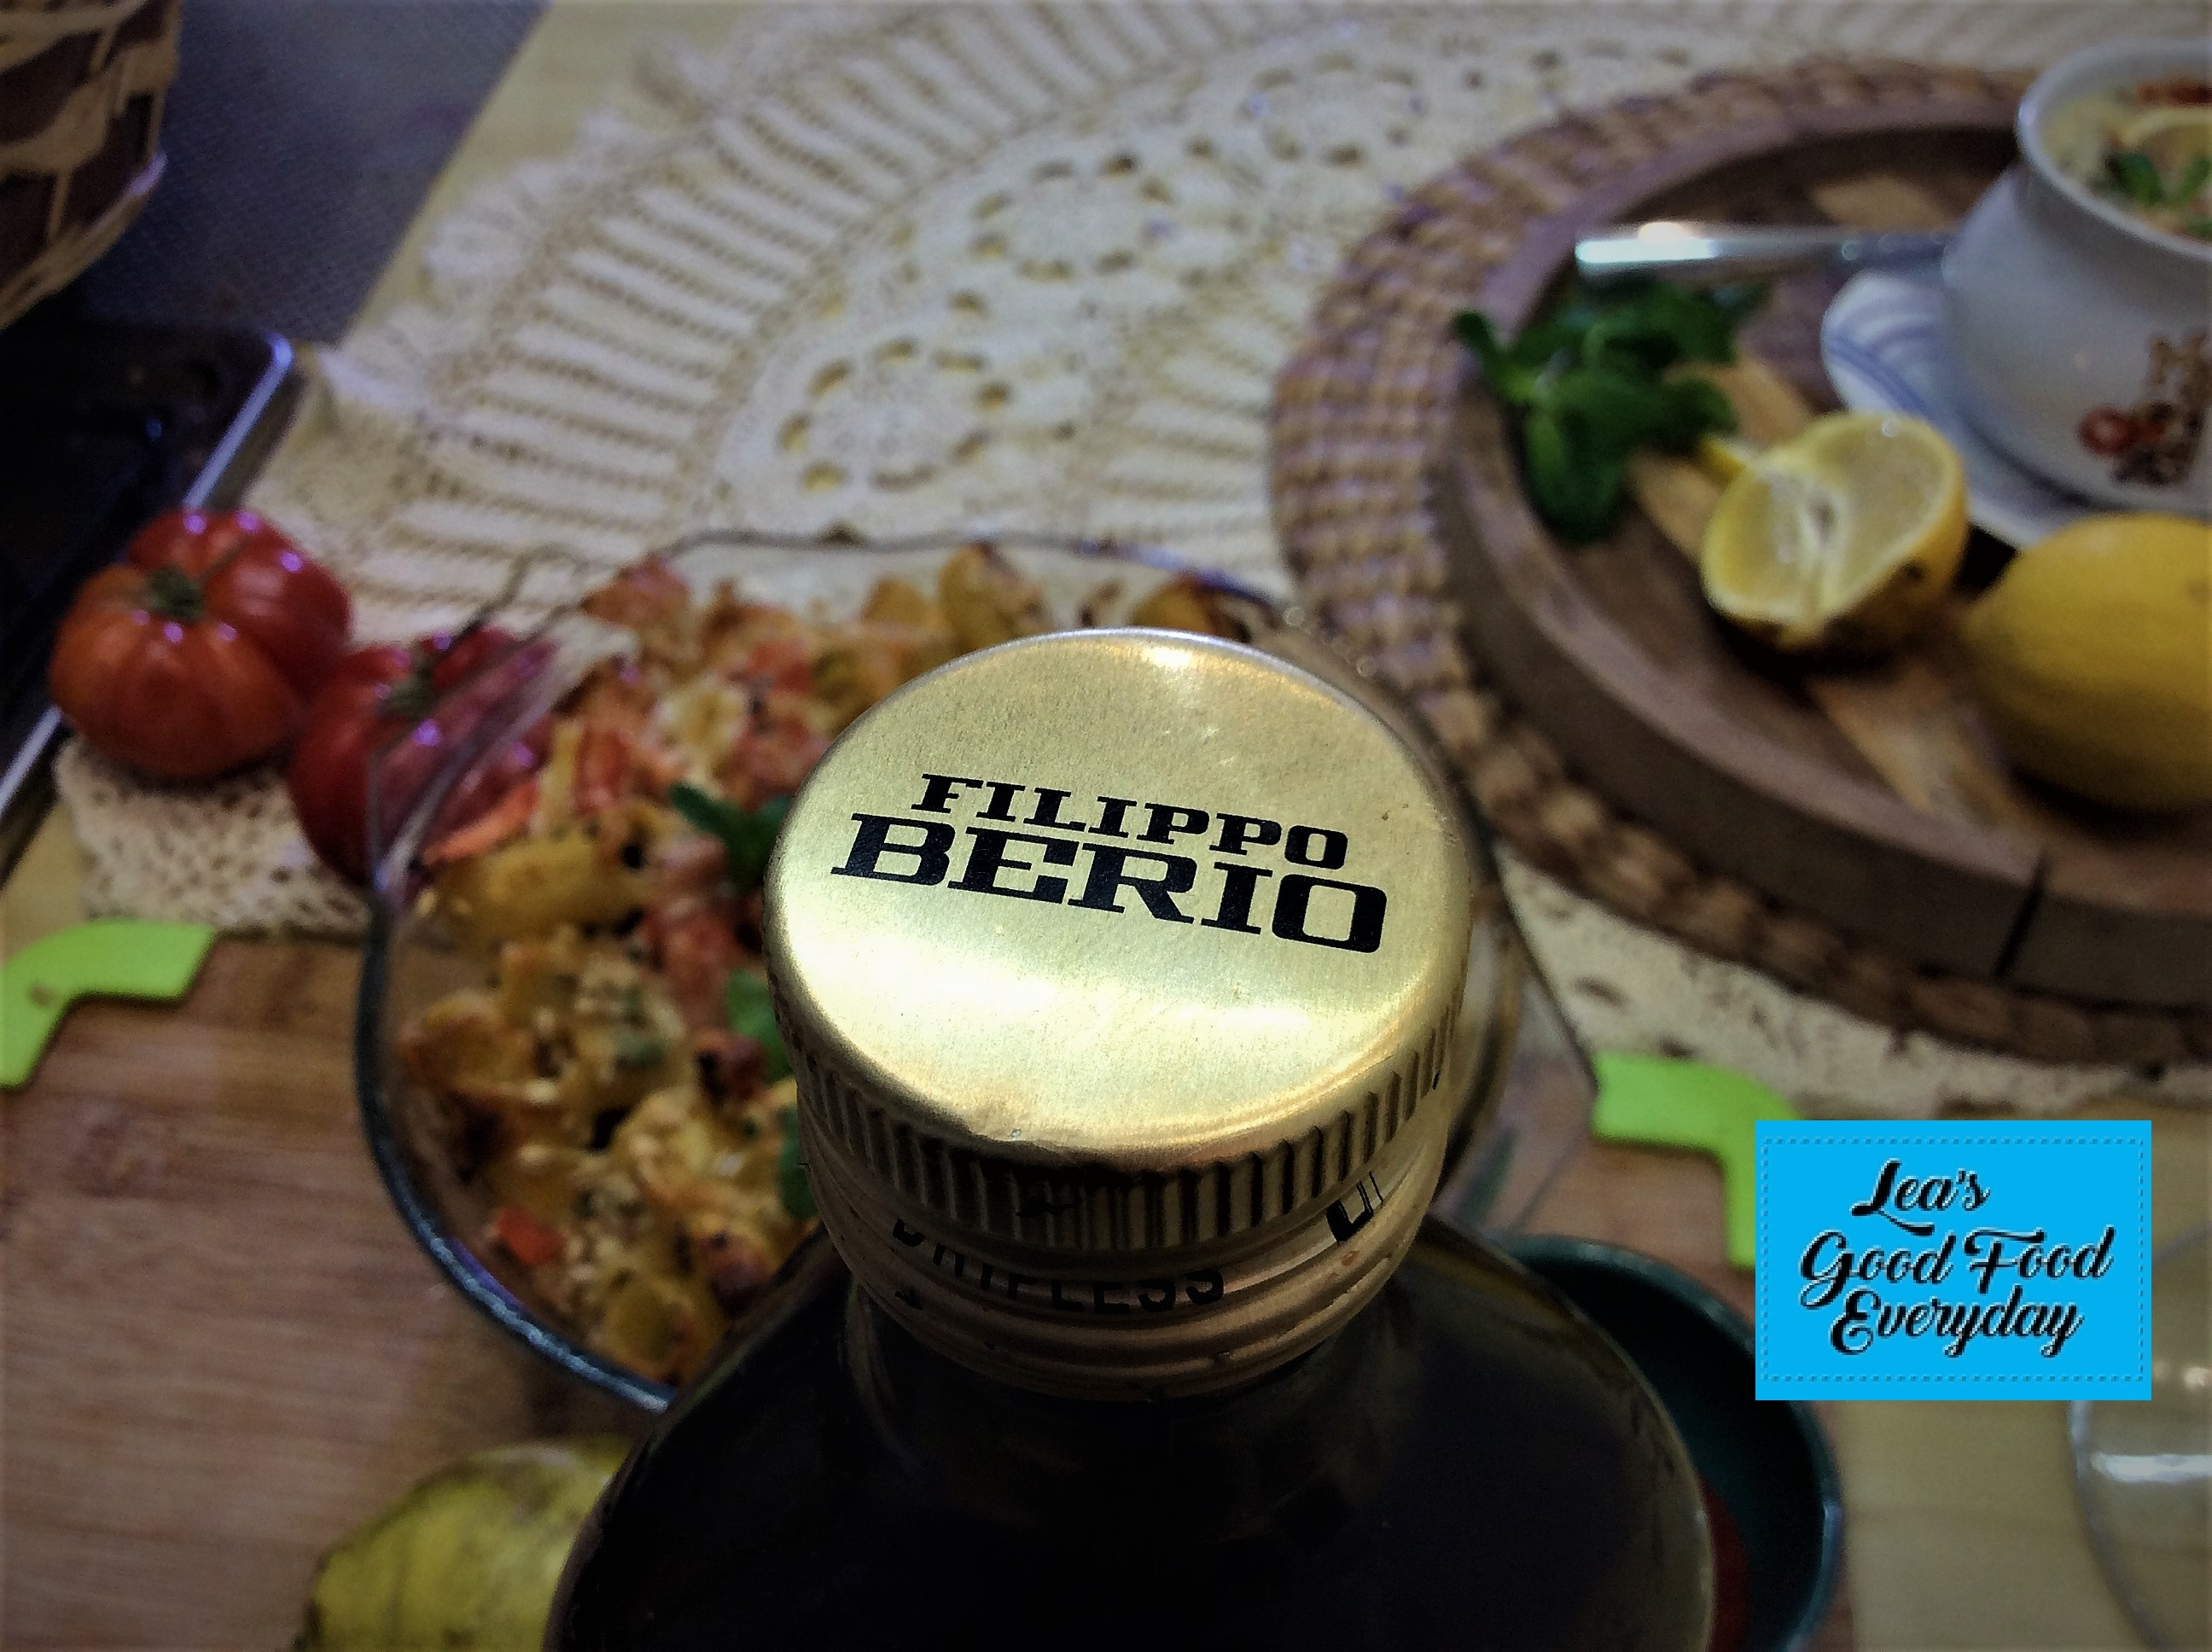 Filippo Berio Olive Oil, simply the best